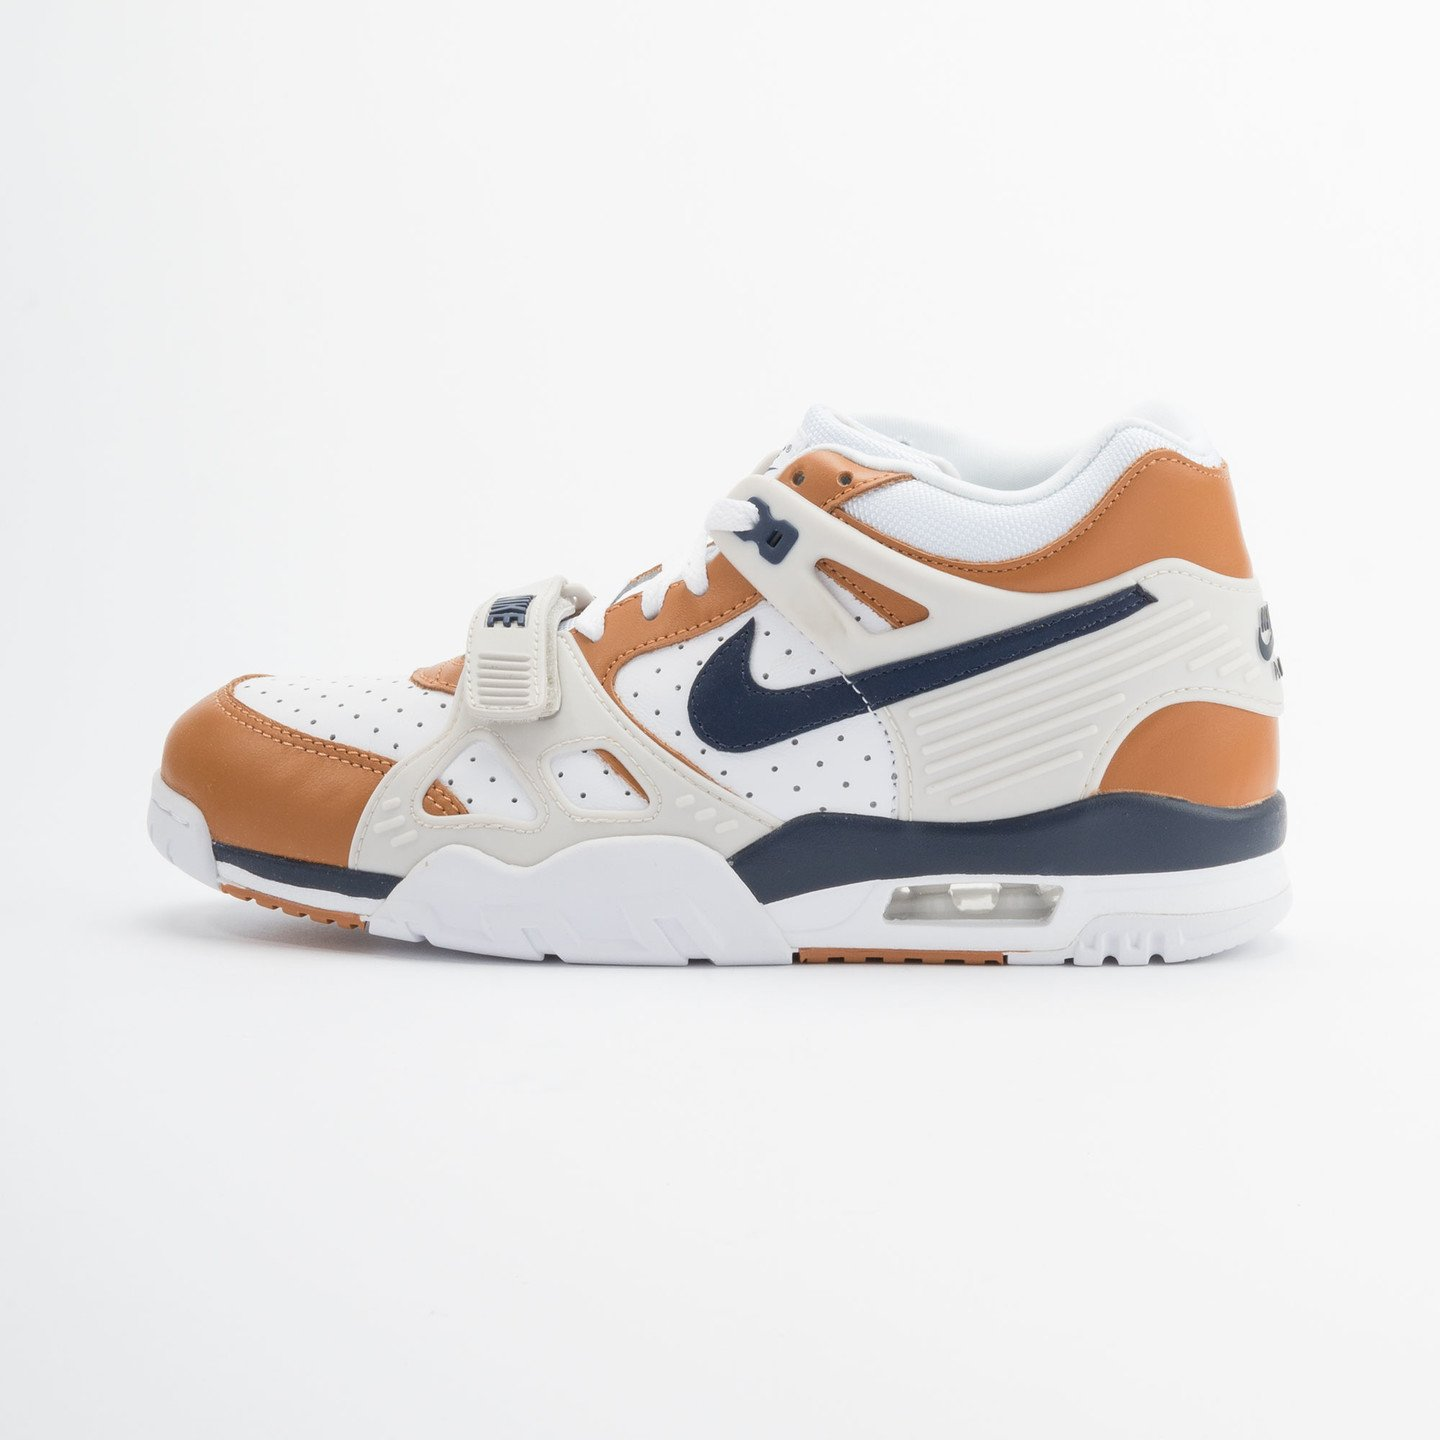 Nike Air Trainer 3 Premium Medicine Ball White/Mid Navy-Gngr-Lght Bn 705425-100-47